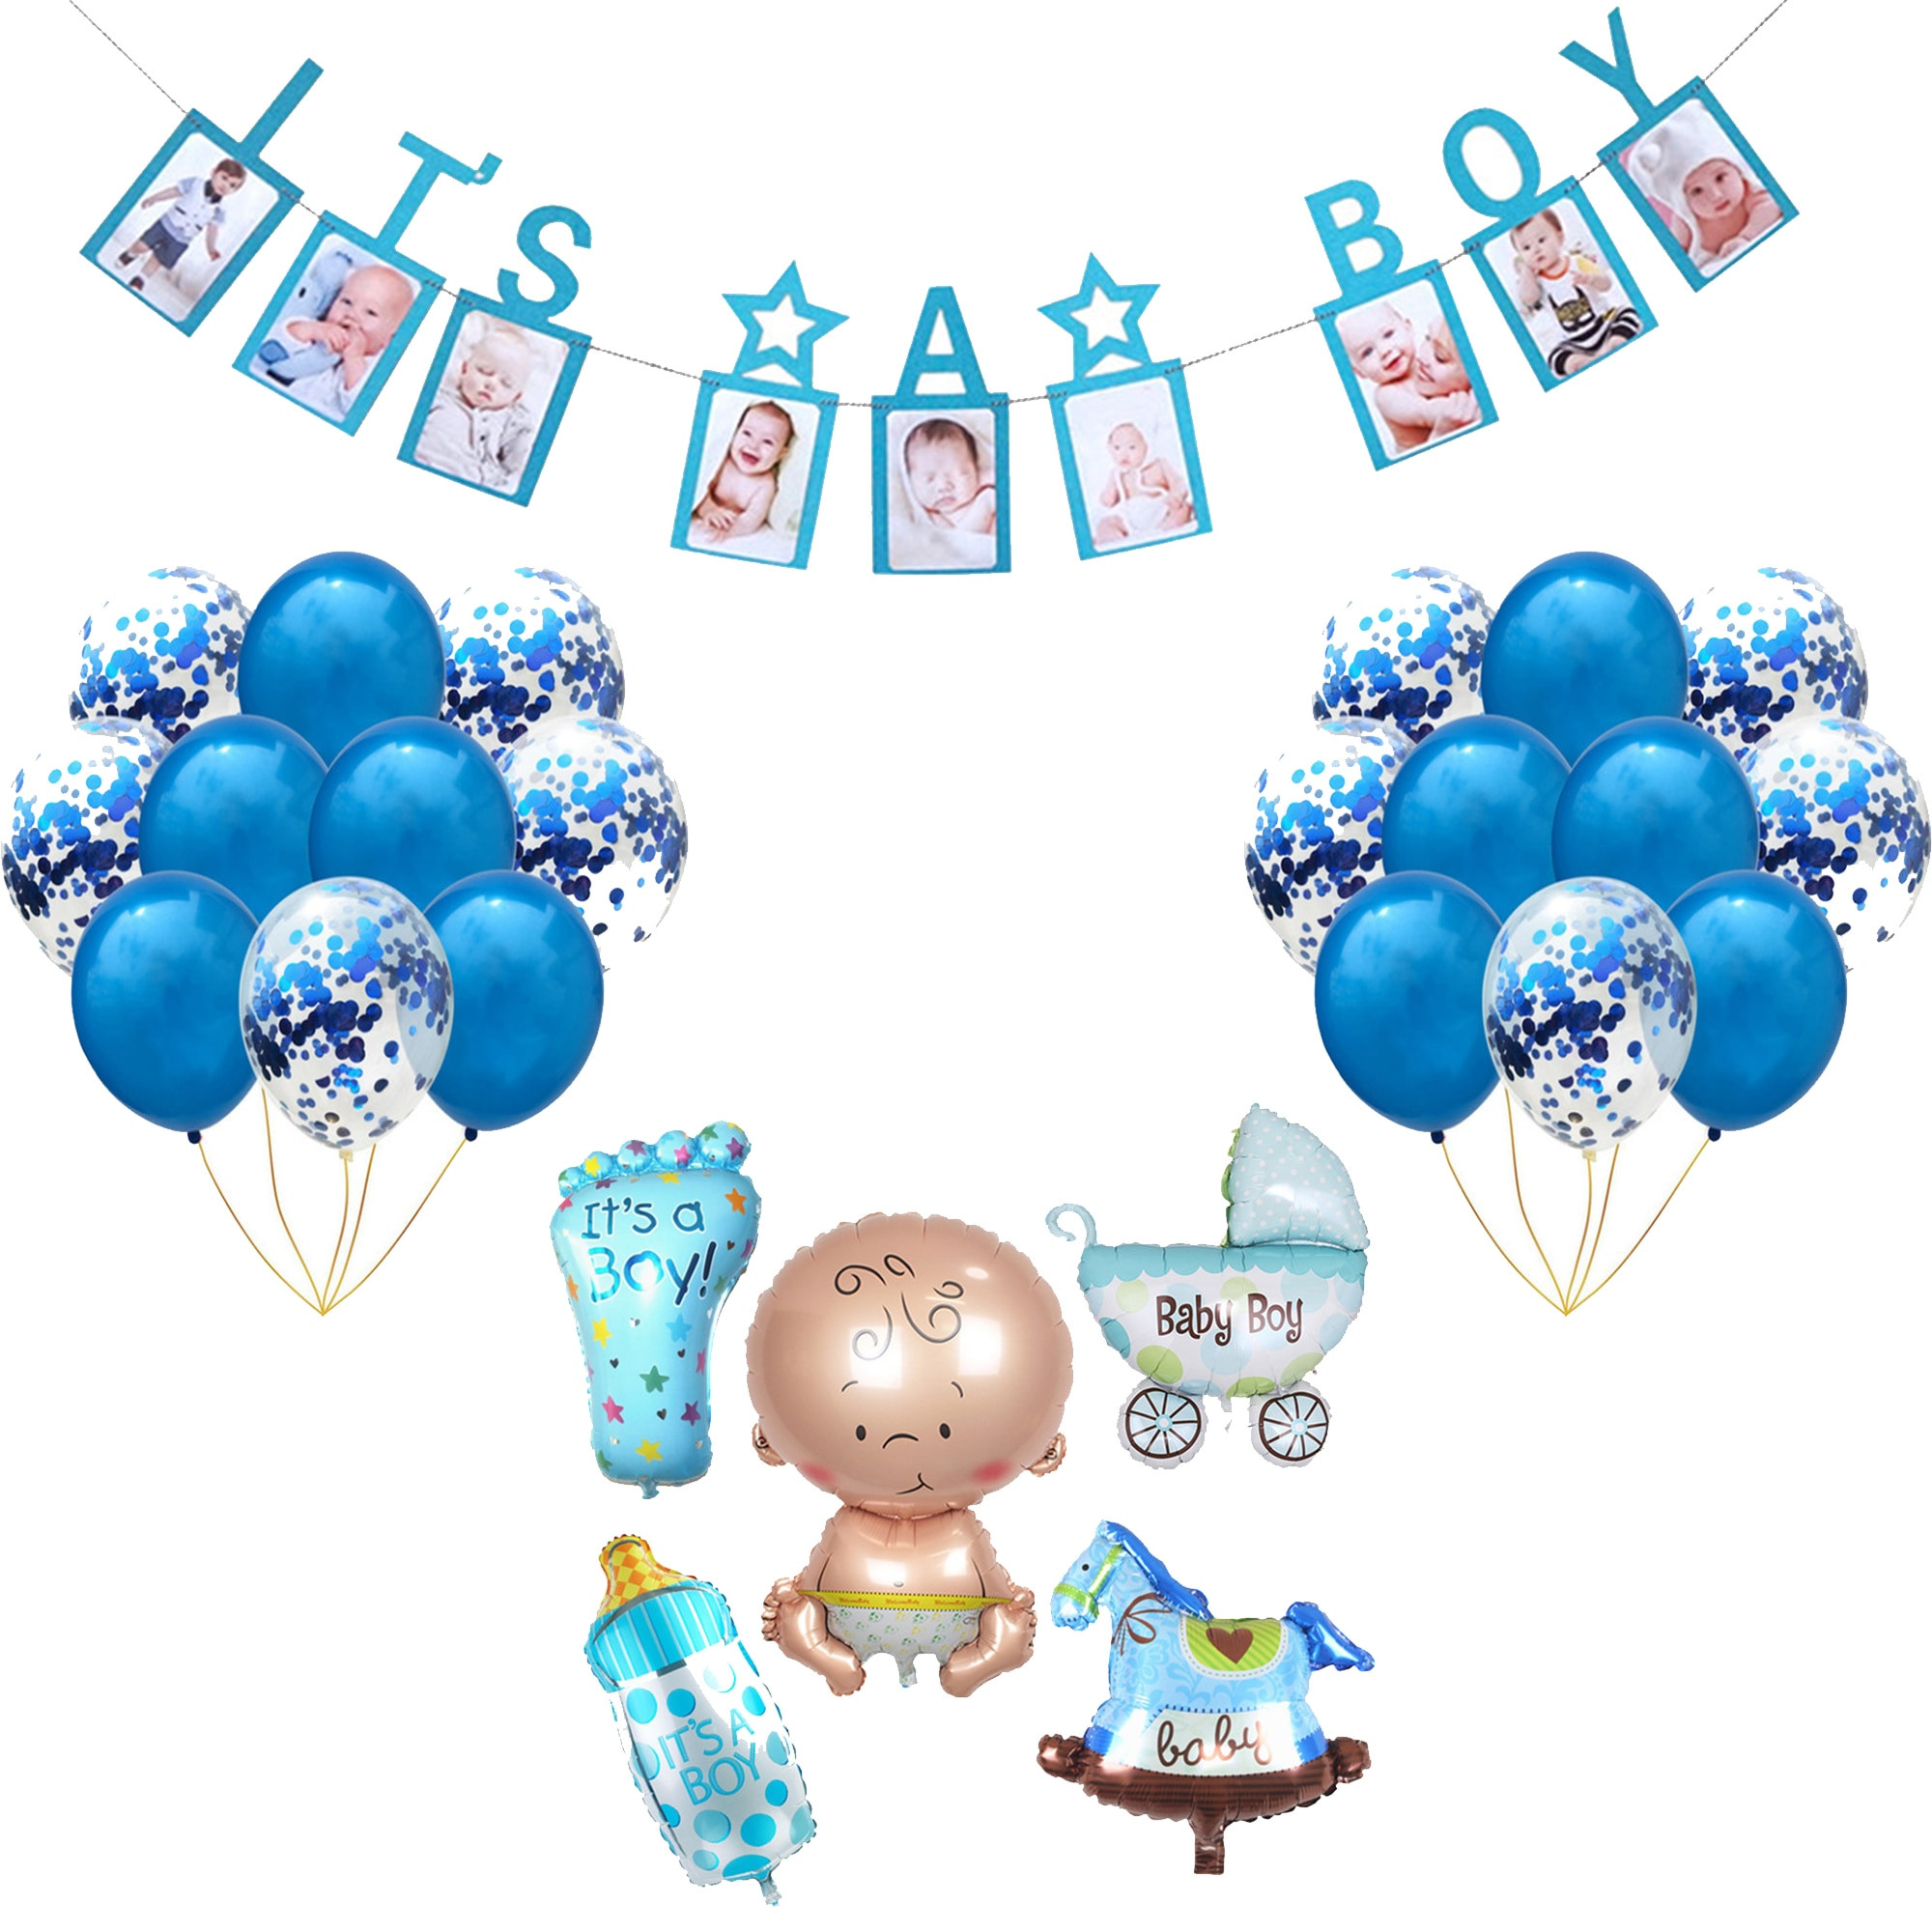 Oh Baby Party Supplies  Gender Reveal Its A Boy Girl Baby Shower Boy Party